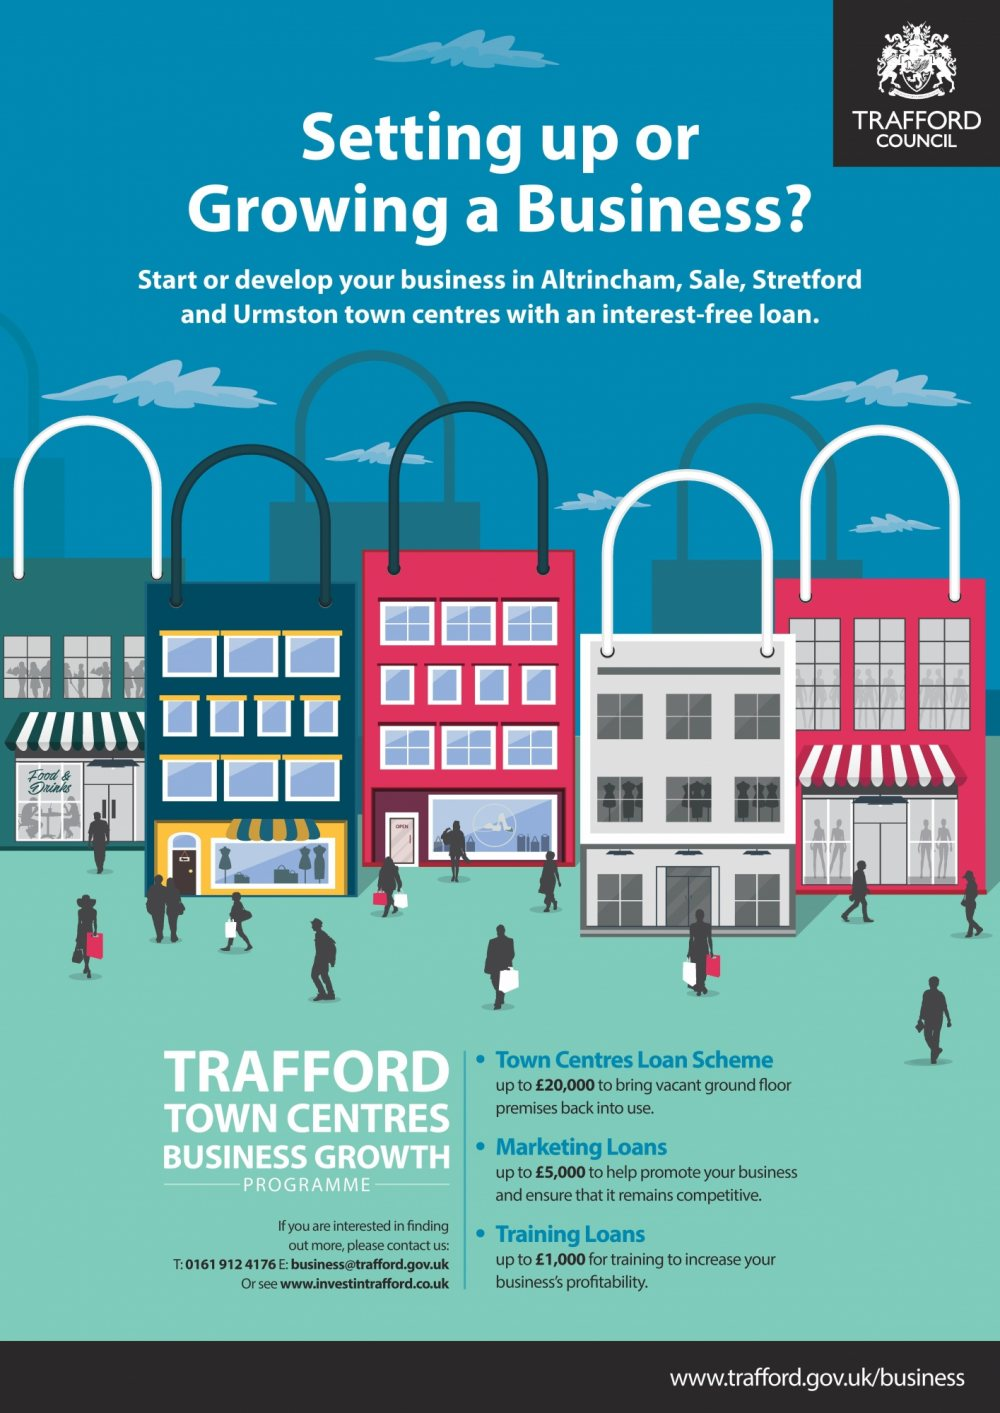 Trafford Council Business Growth Programme